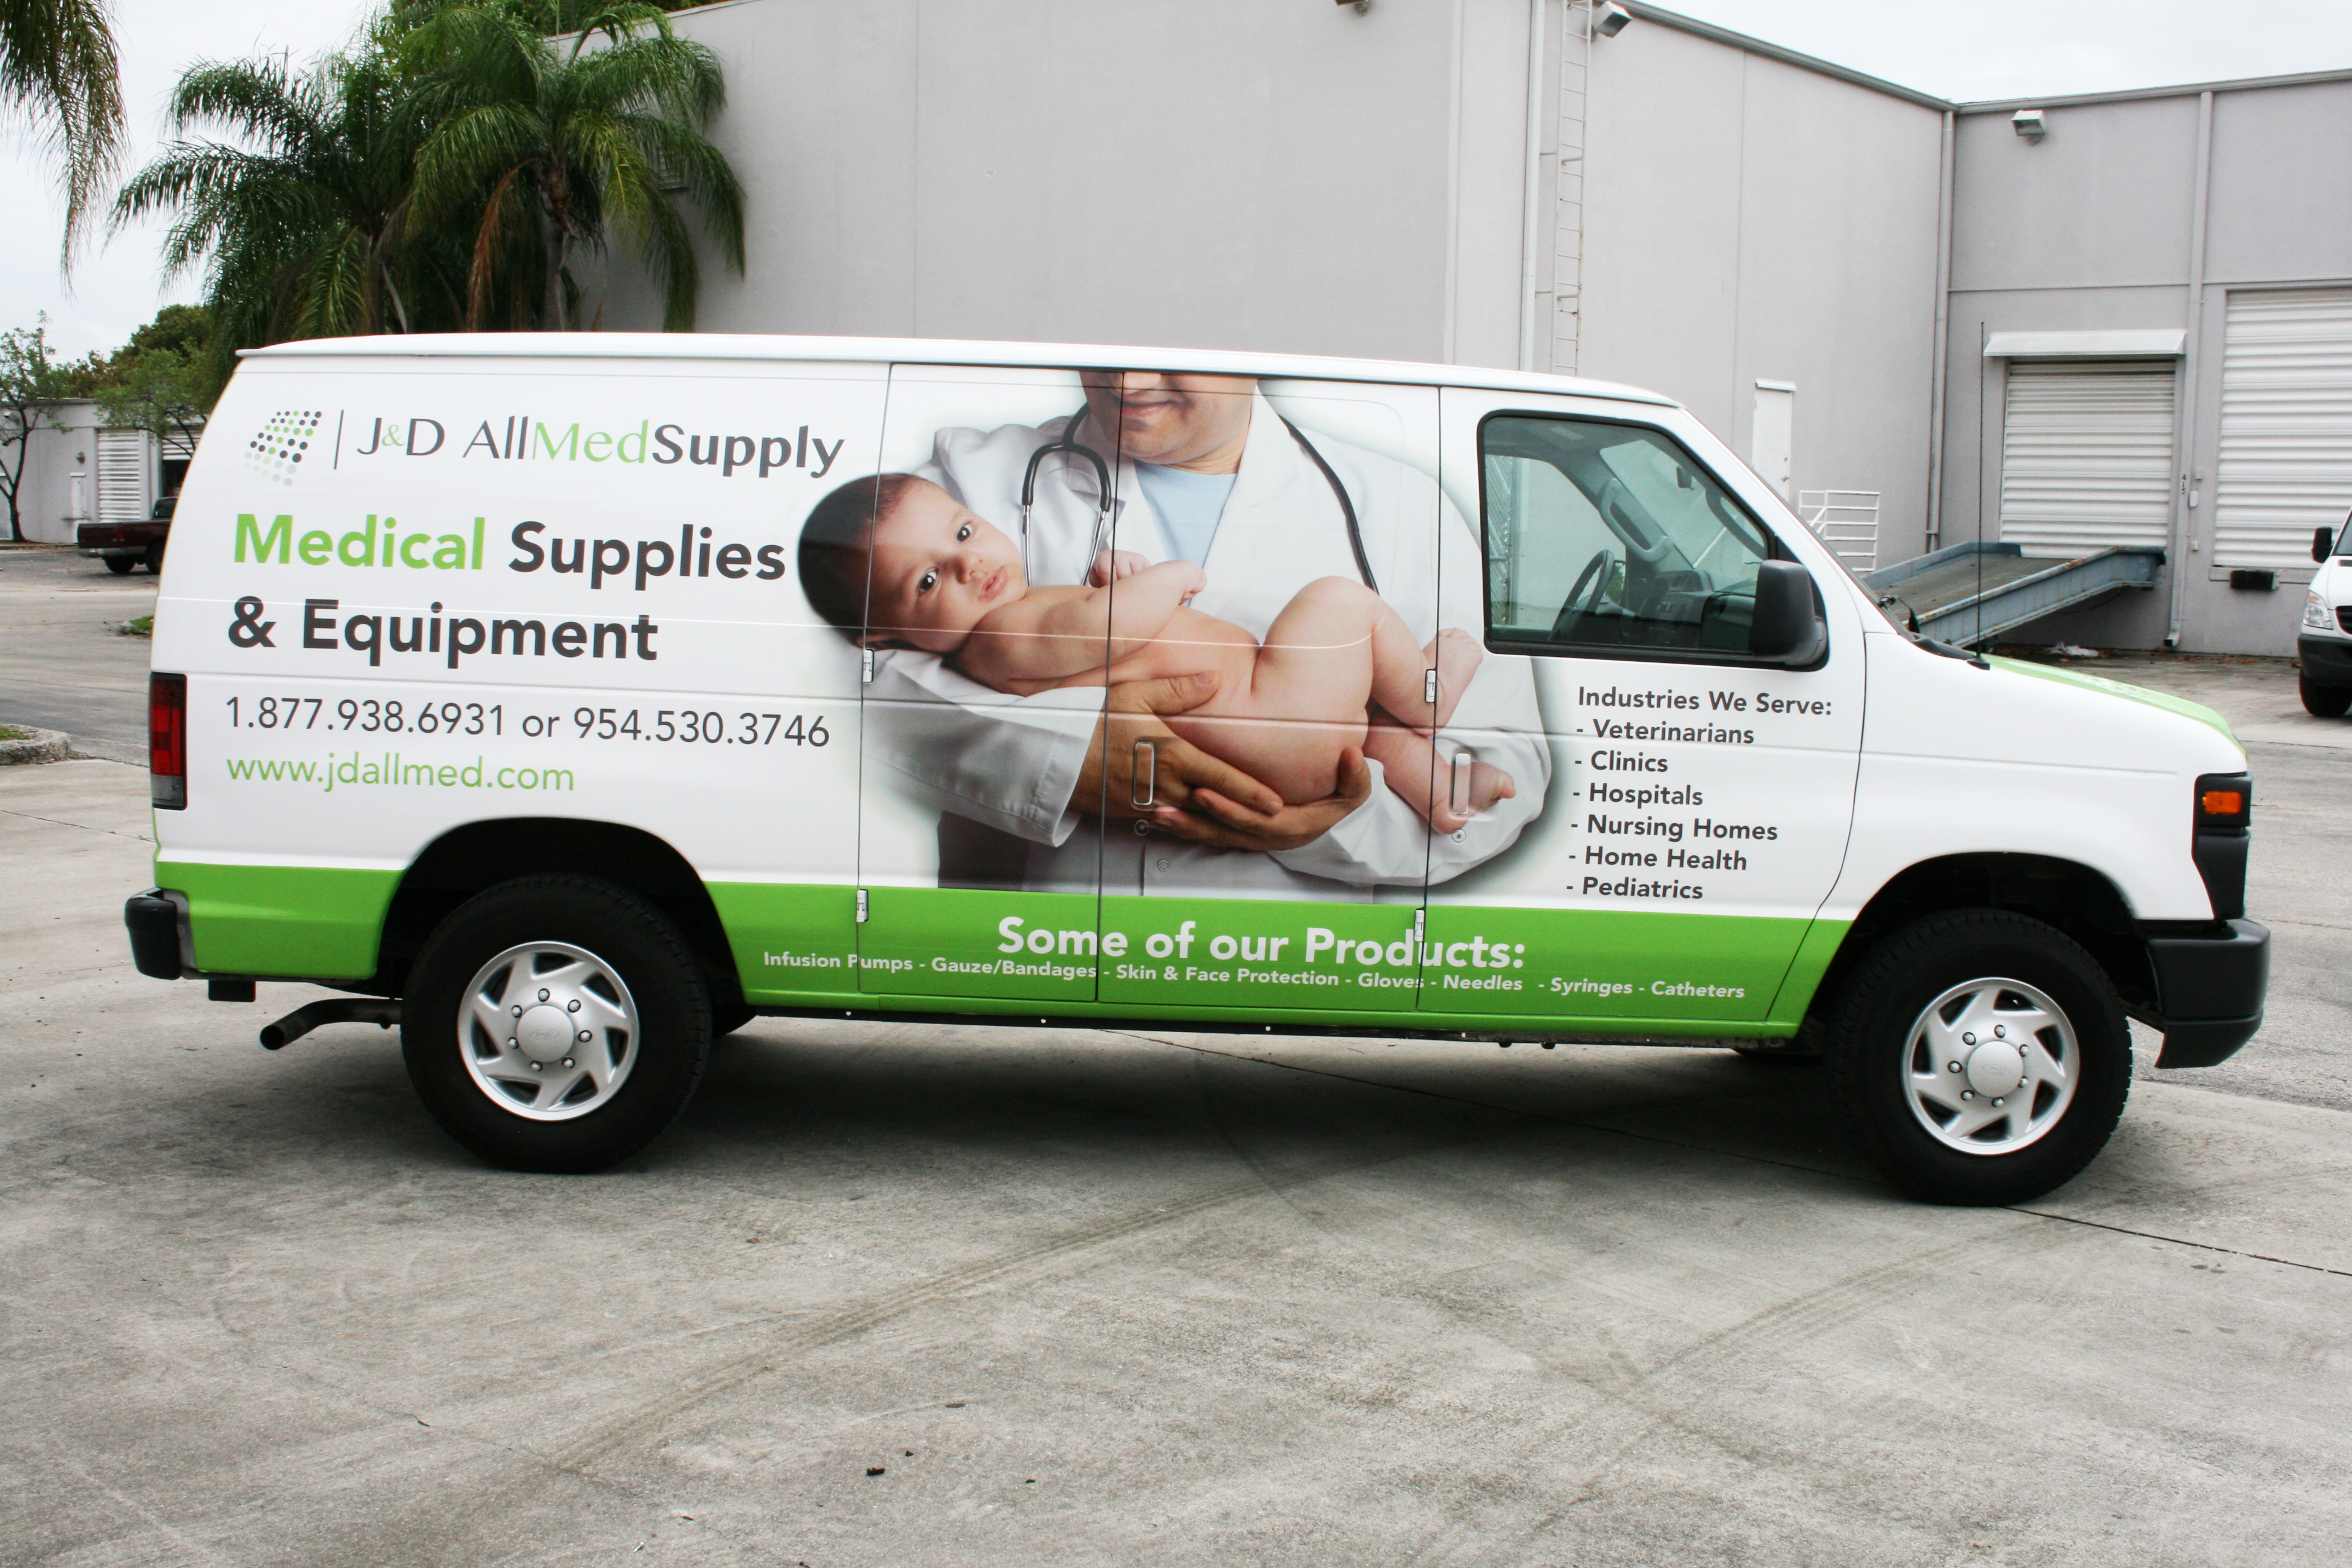 Mercedes 20Benz 20Sprinter 20Vinyl 20Wrap 20Fort 20Lauderdale 20Florida as well Medical Supply Delivery Van Wrap Graphics Fort Lauderdale Florida as well Medical Supply Delivery Van Wrap Graphics Fort Lauderdale Florida additionally Vehiclegallery furthermore Tractor Pulling Trailer Wrap Sullivan. on vehicle wrap graphics